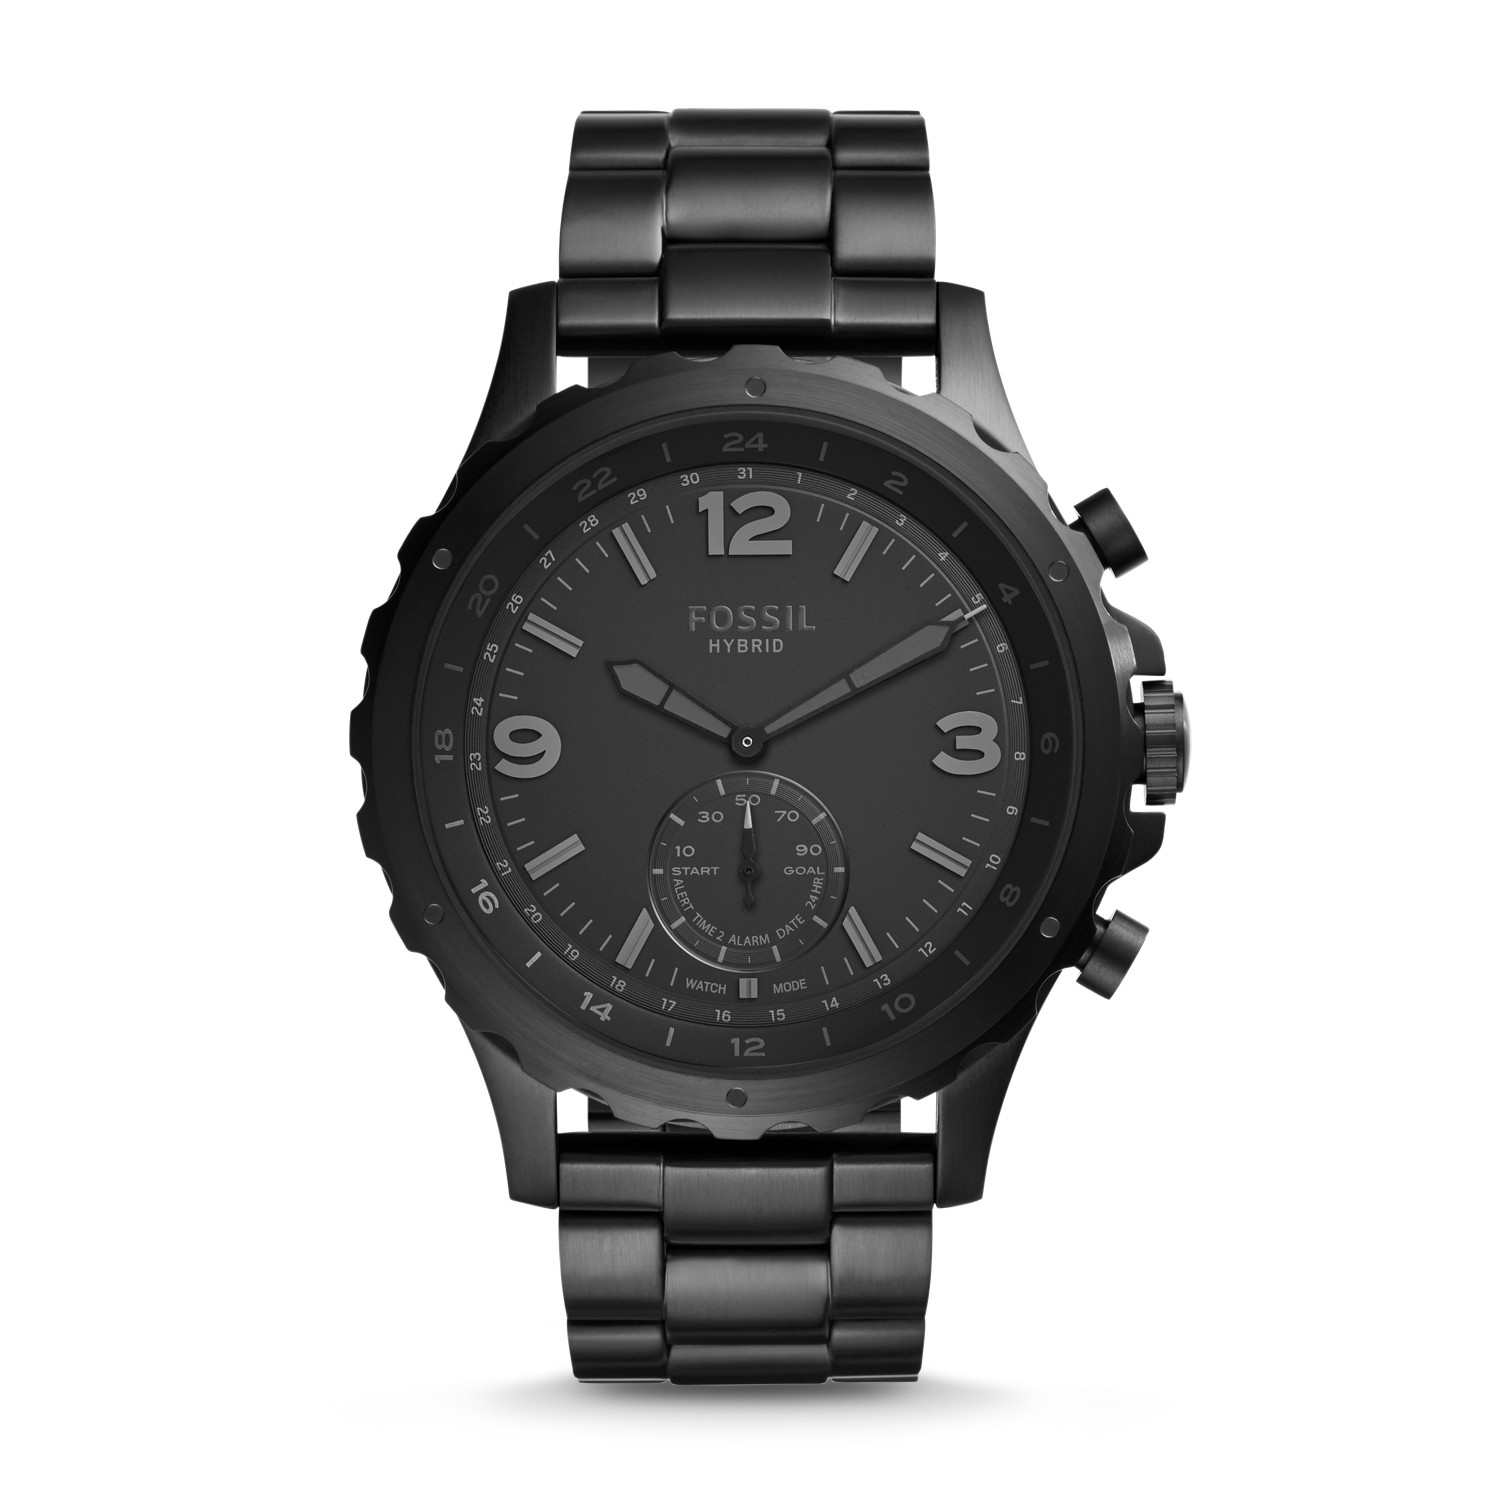 hybrid smartwatch nate black stainless steel fossil